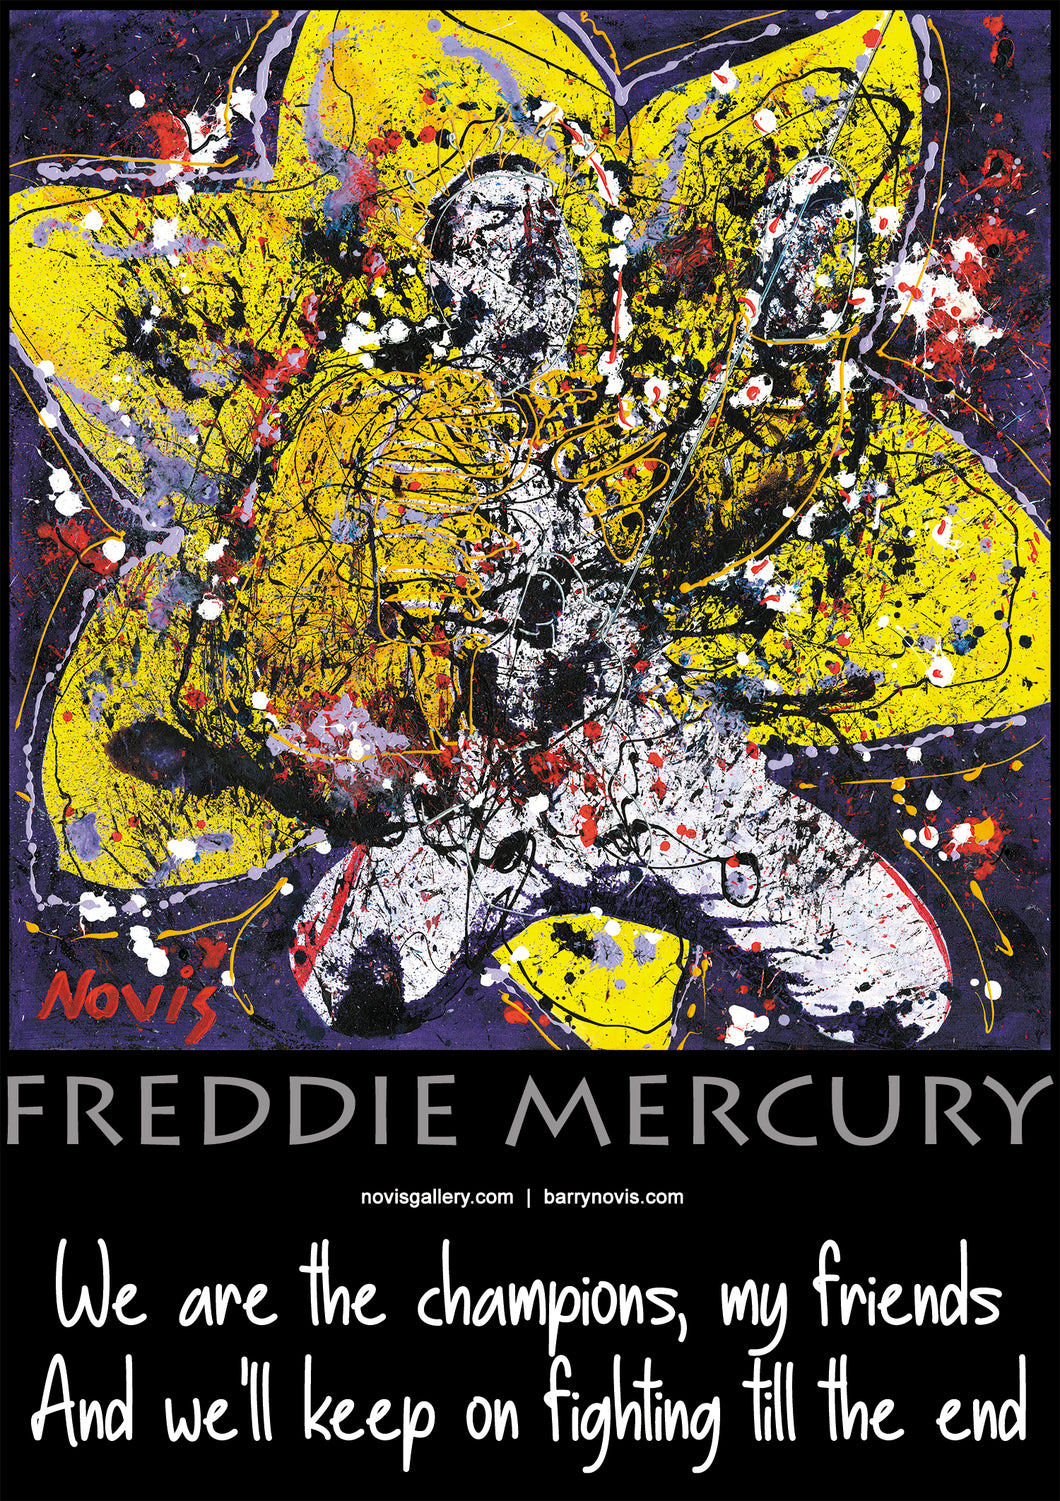 FREDDIE MERCURY POSTER - we are the champions